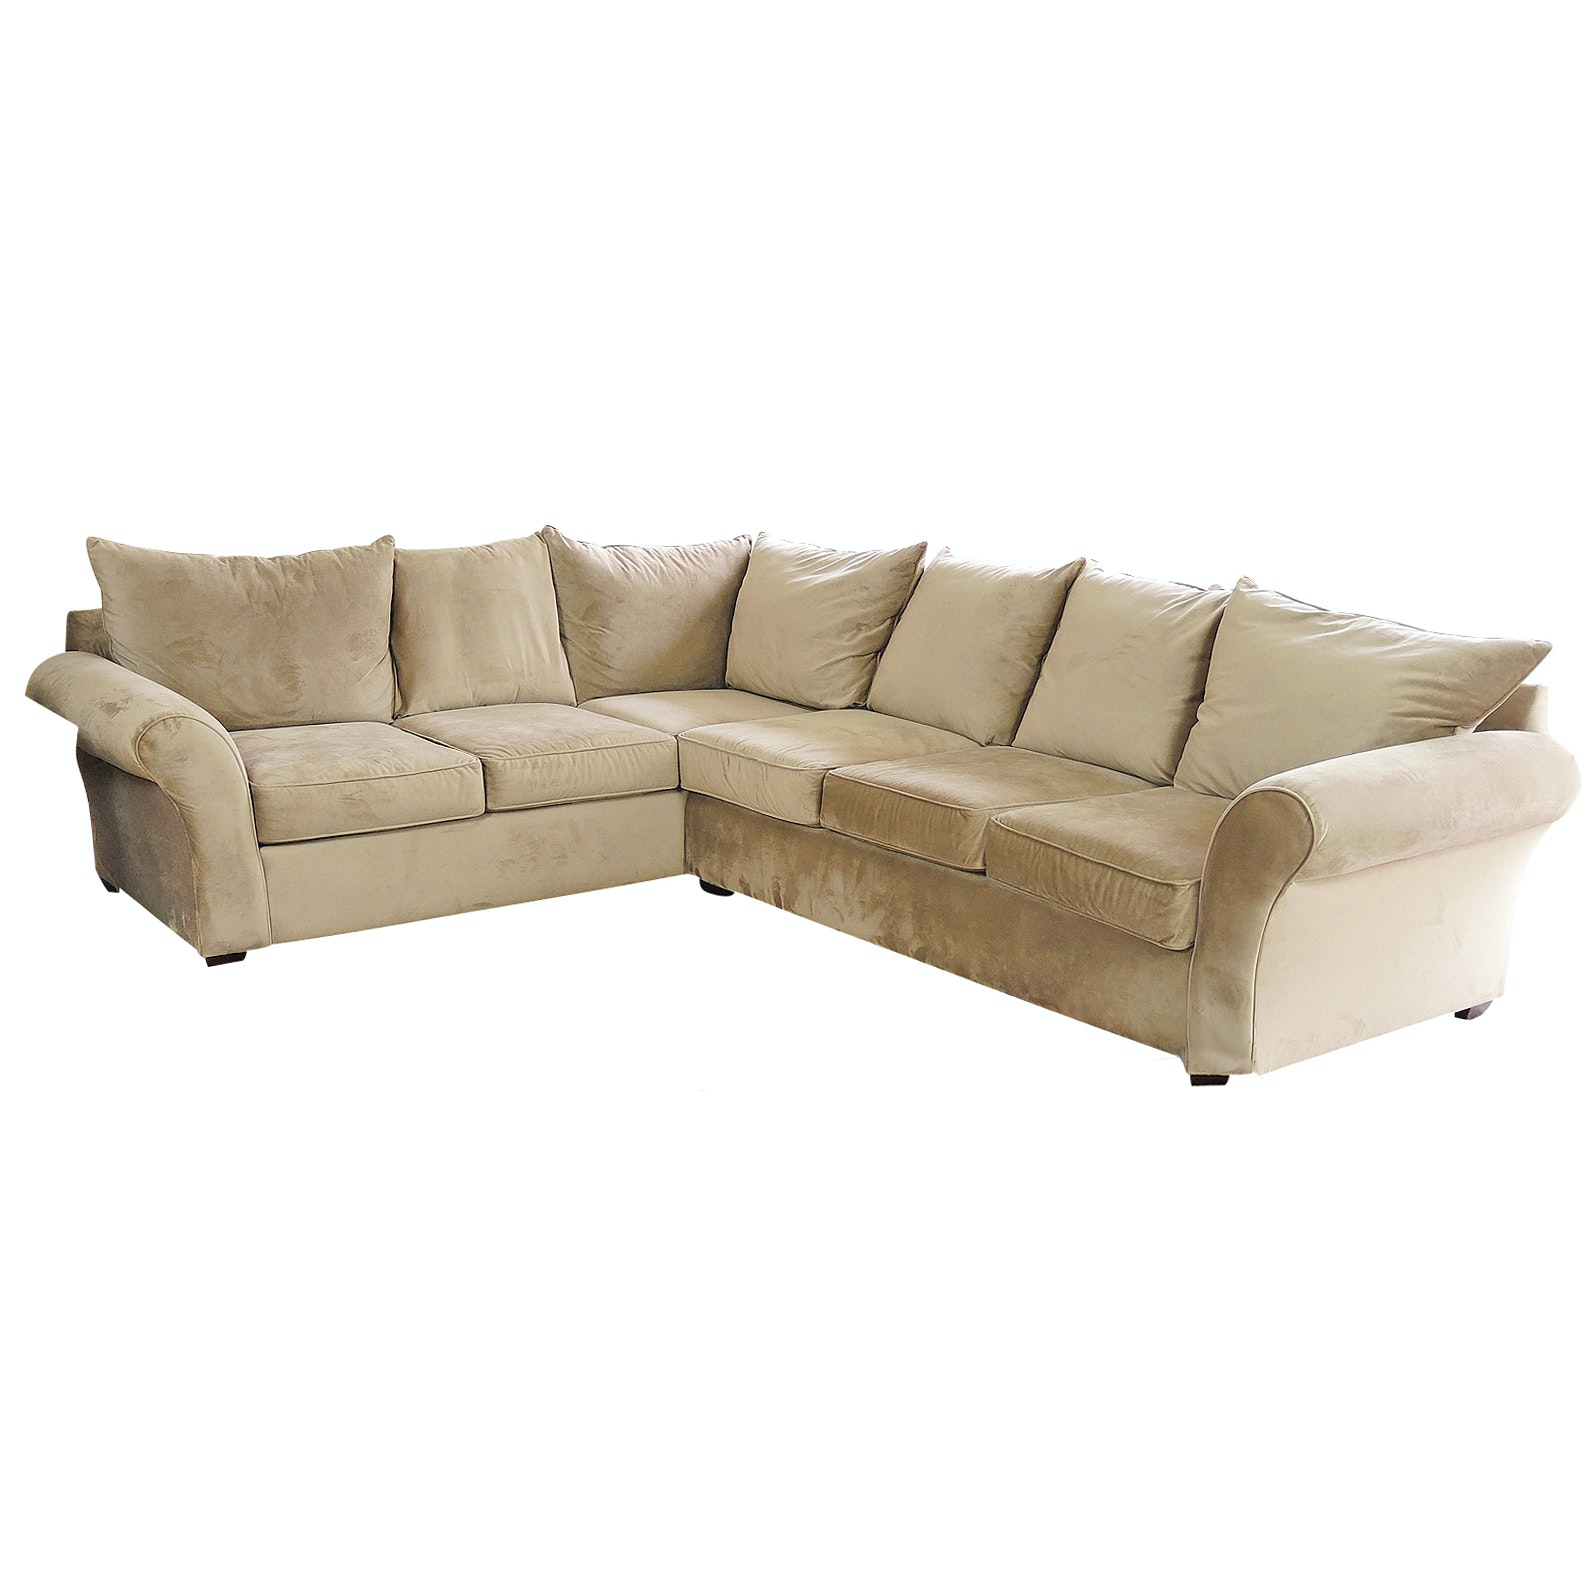 Ellis Home Furnishings Micro Suede Sectional Sofa, Contemporary